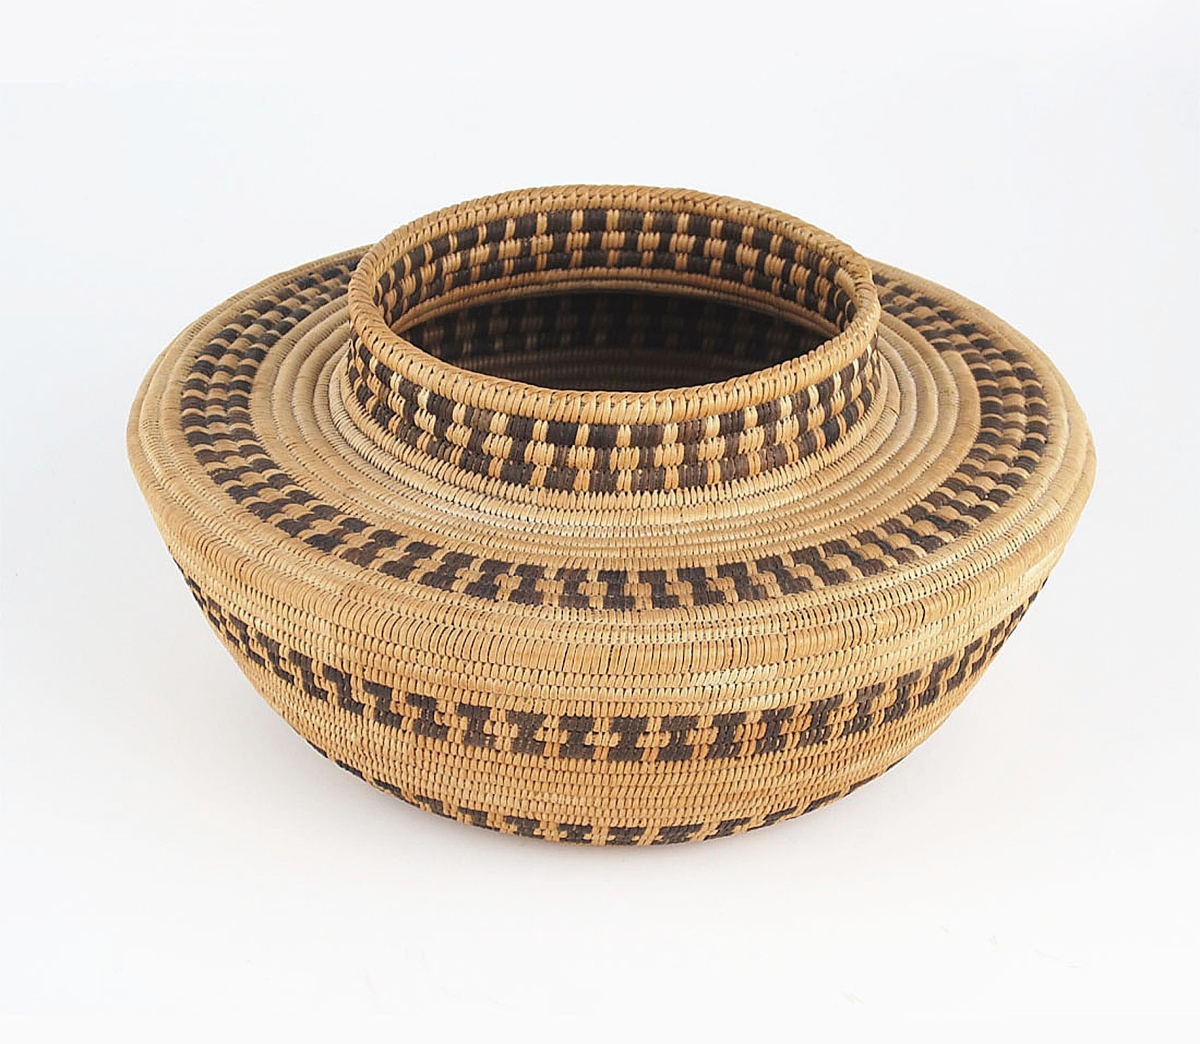 Marcy Burns noted the fine weave, pleasing shape, excellent condition and beautiful patina of this Mono bottleneck basket, which was coiled out of sedge and bracken fern root on a grass foundation and dated to the first quarter of the Twentieth Century. It was still available with Marcy Burns American Indian Arts, LLC, New York City.